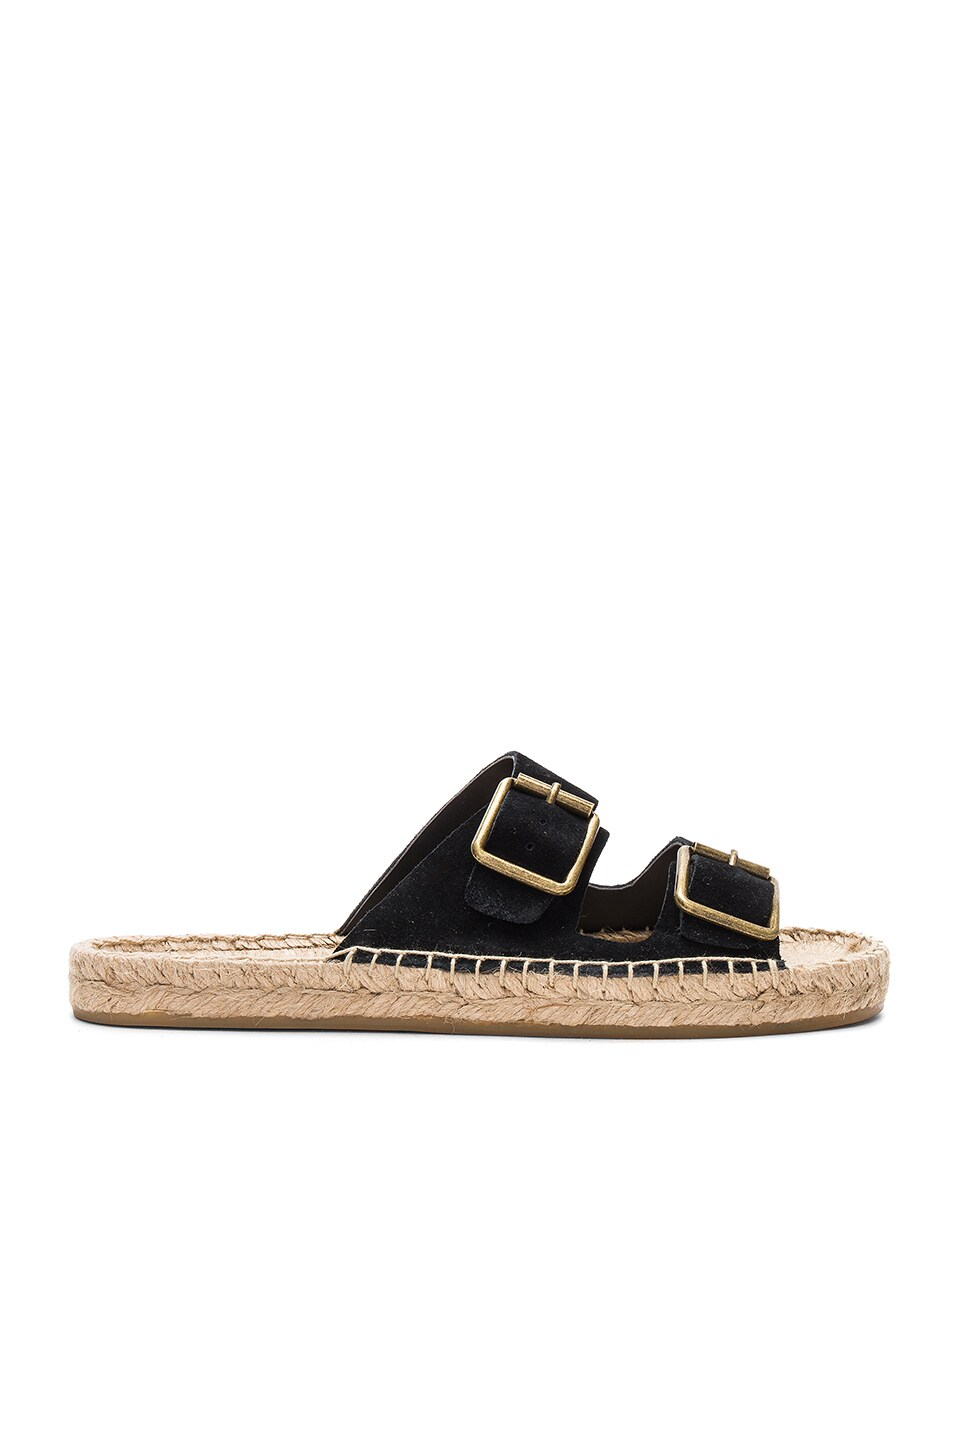 Soludos Elba Sandal in Black